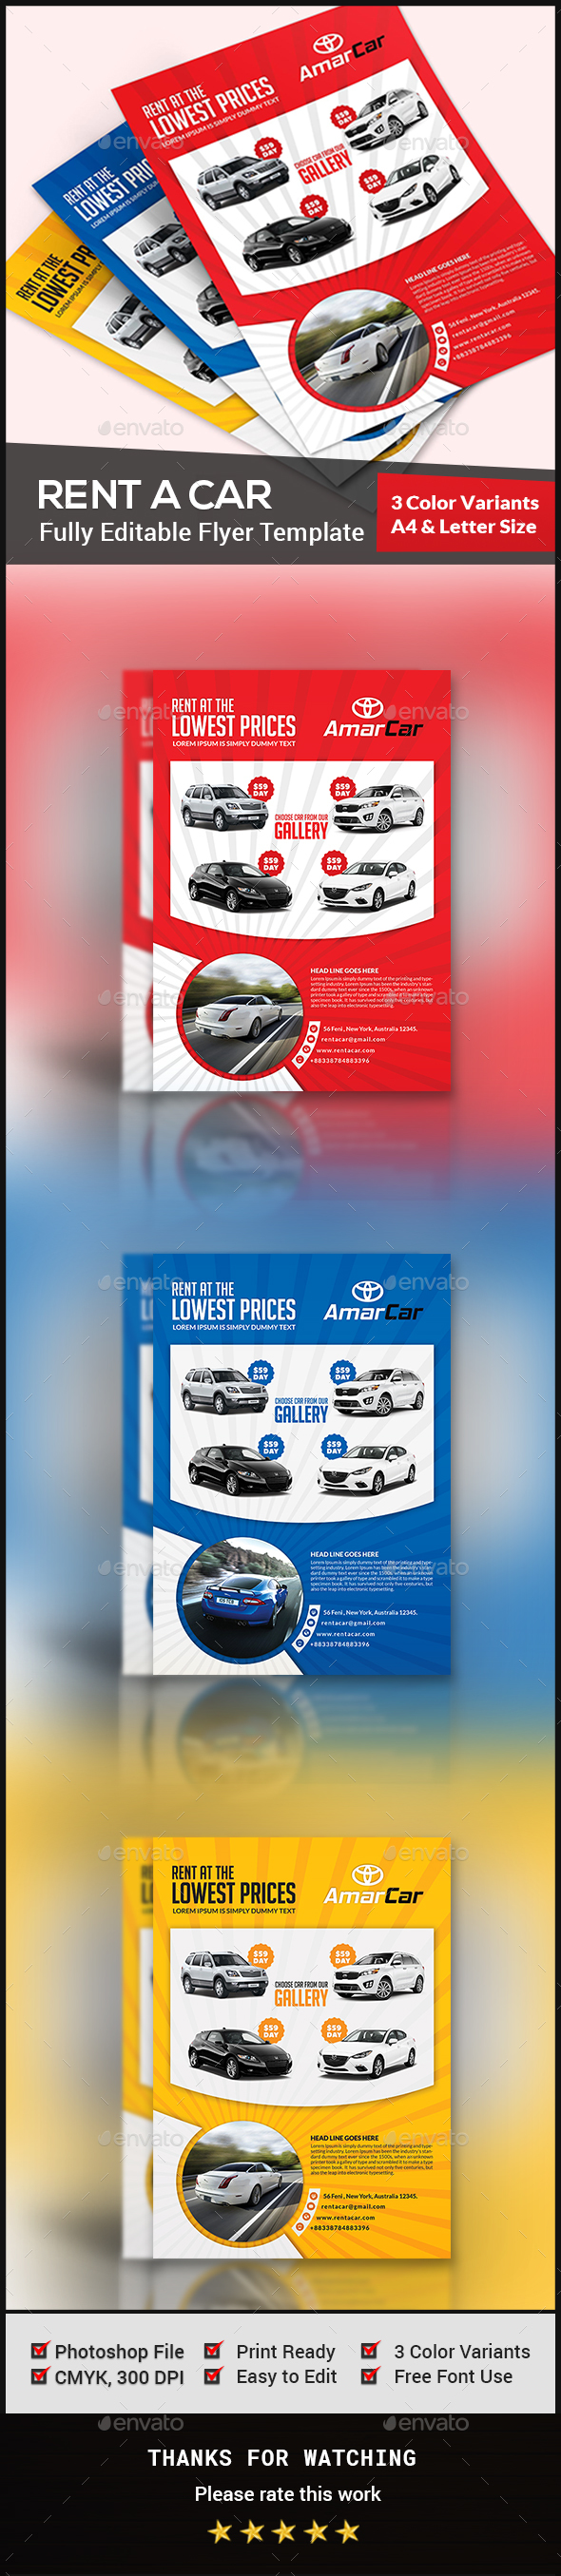 Rent a Car Flyer Template - Commerce Flyers